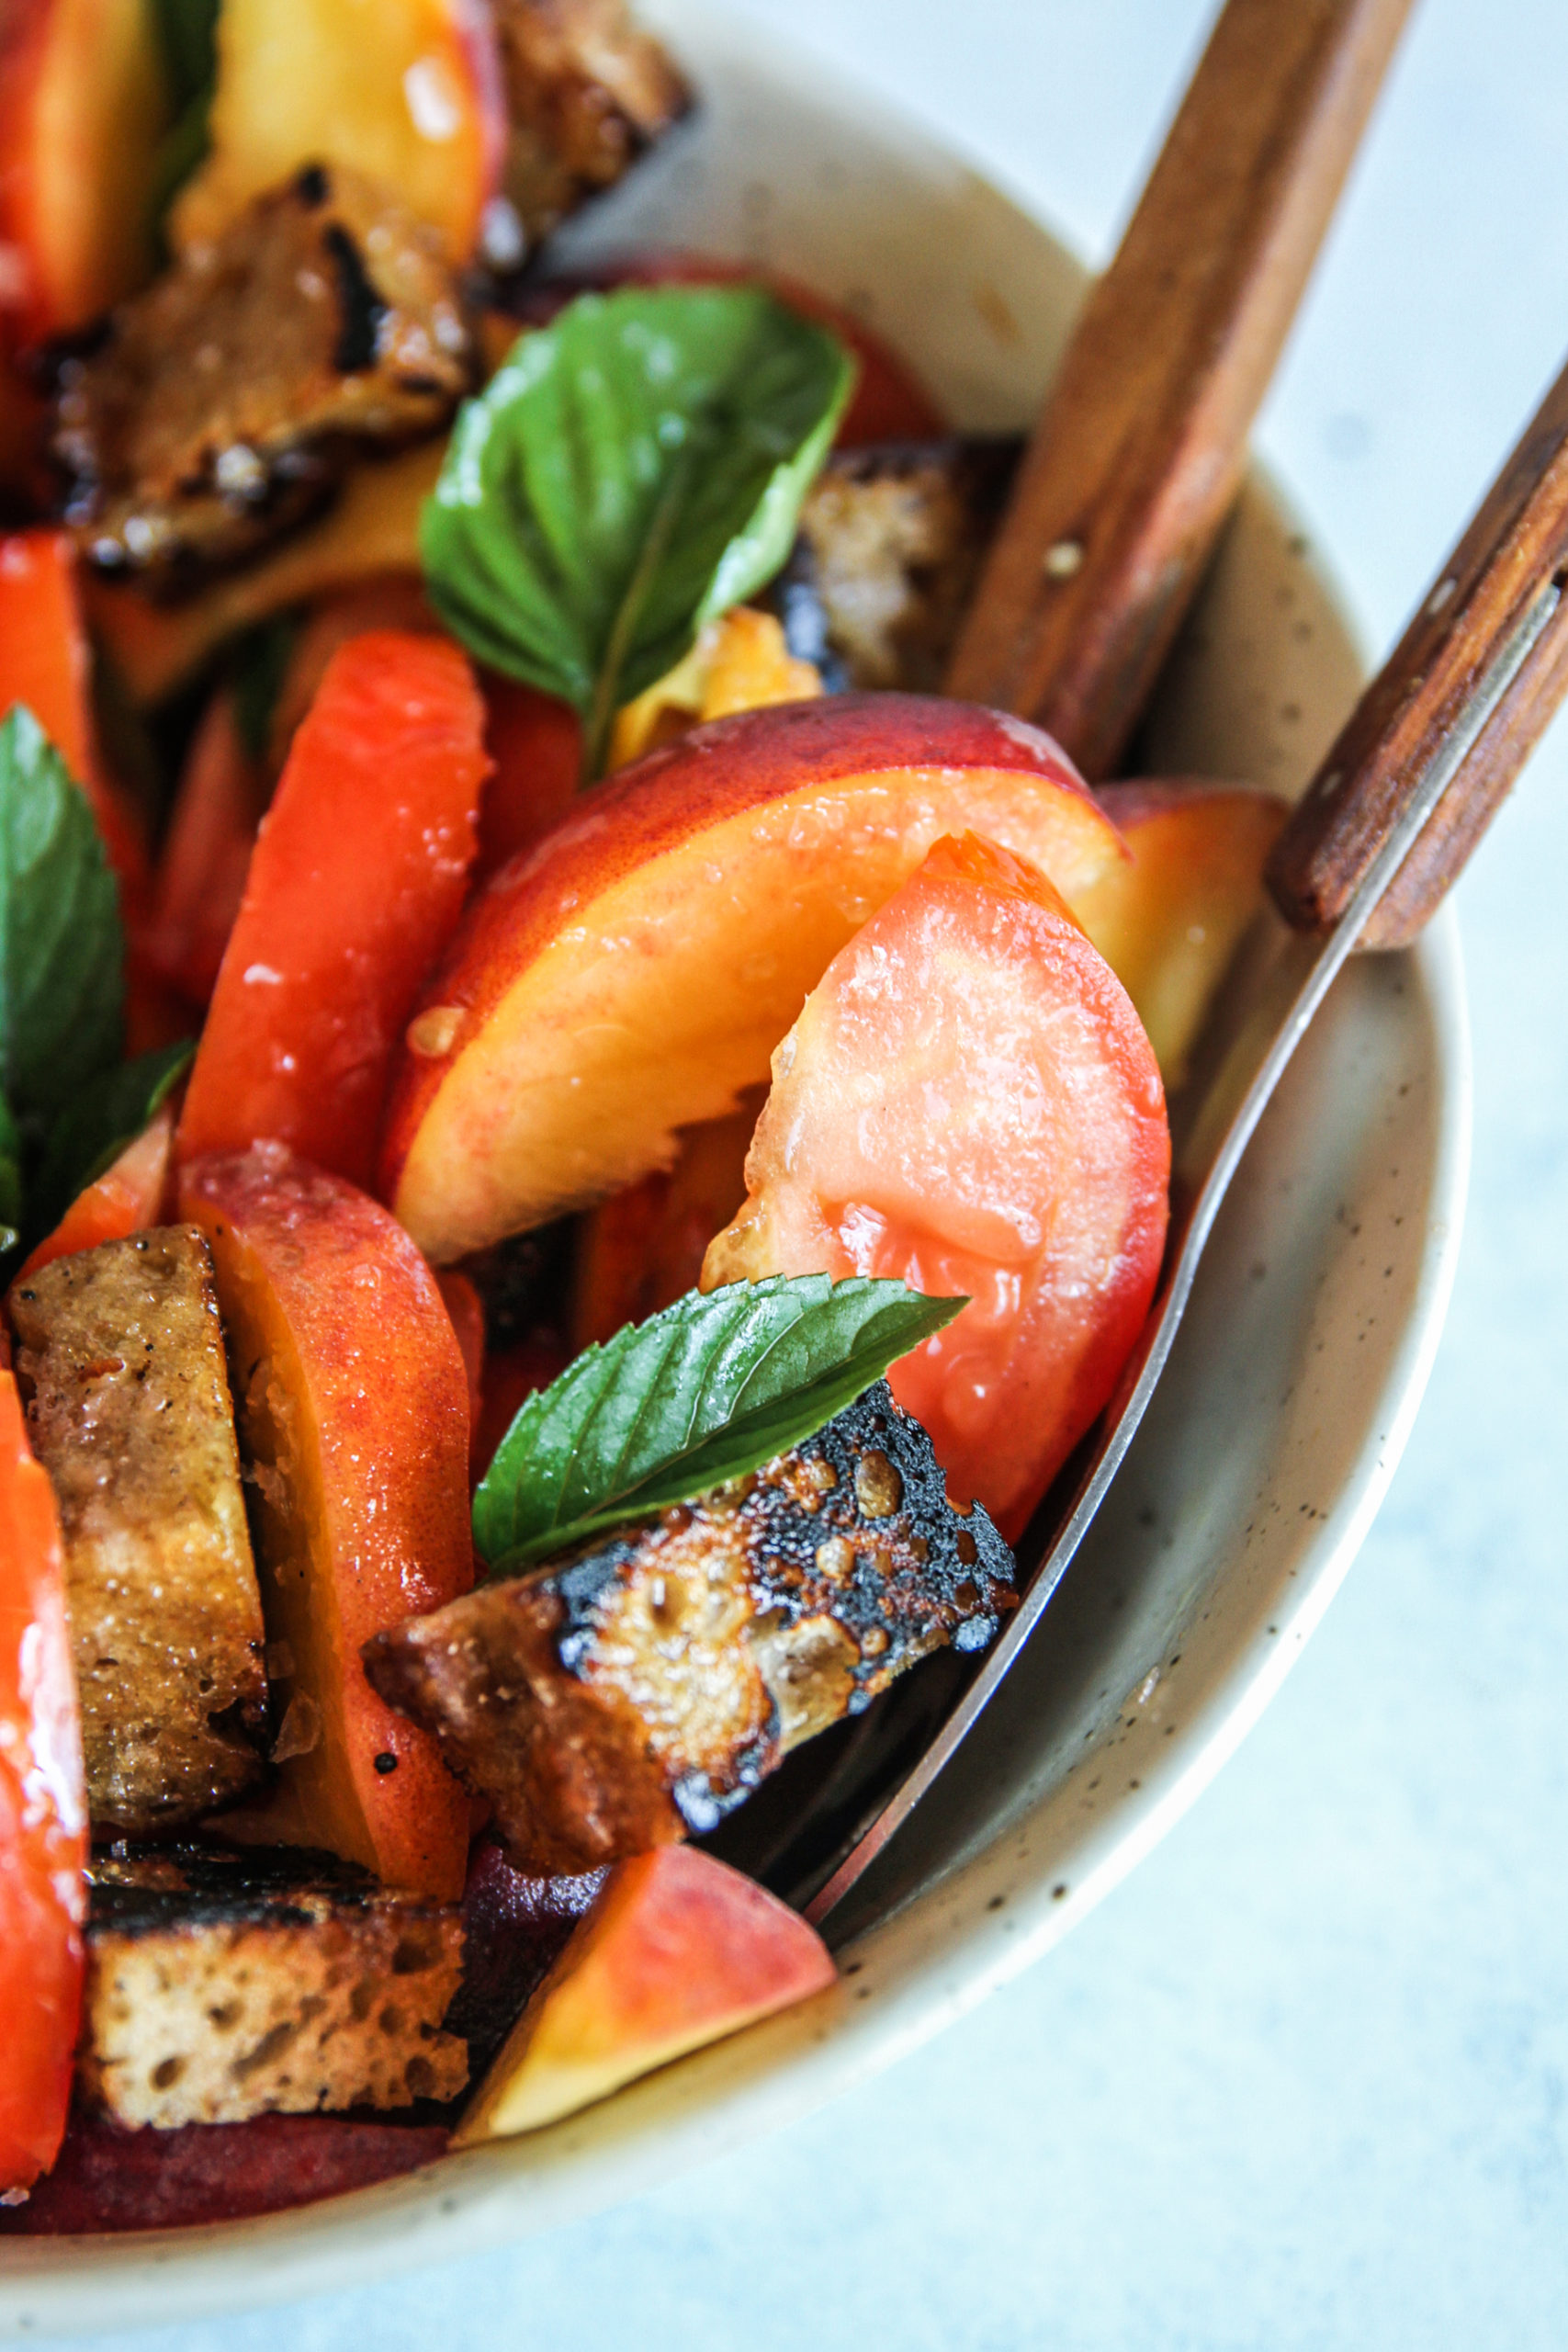 The most amazing peach and tomato panzanella with sourdough croutons